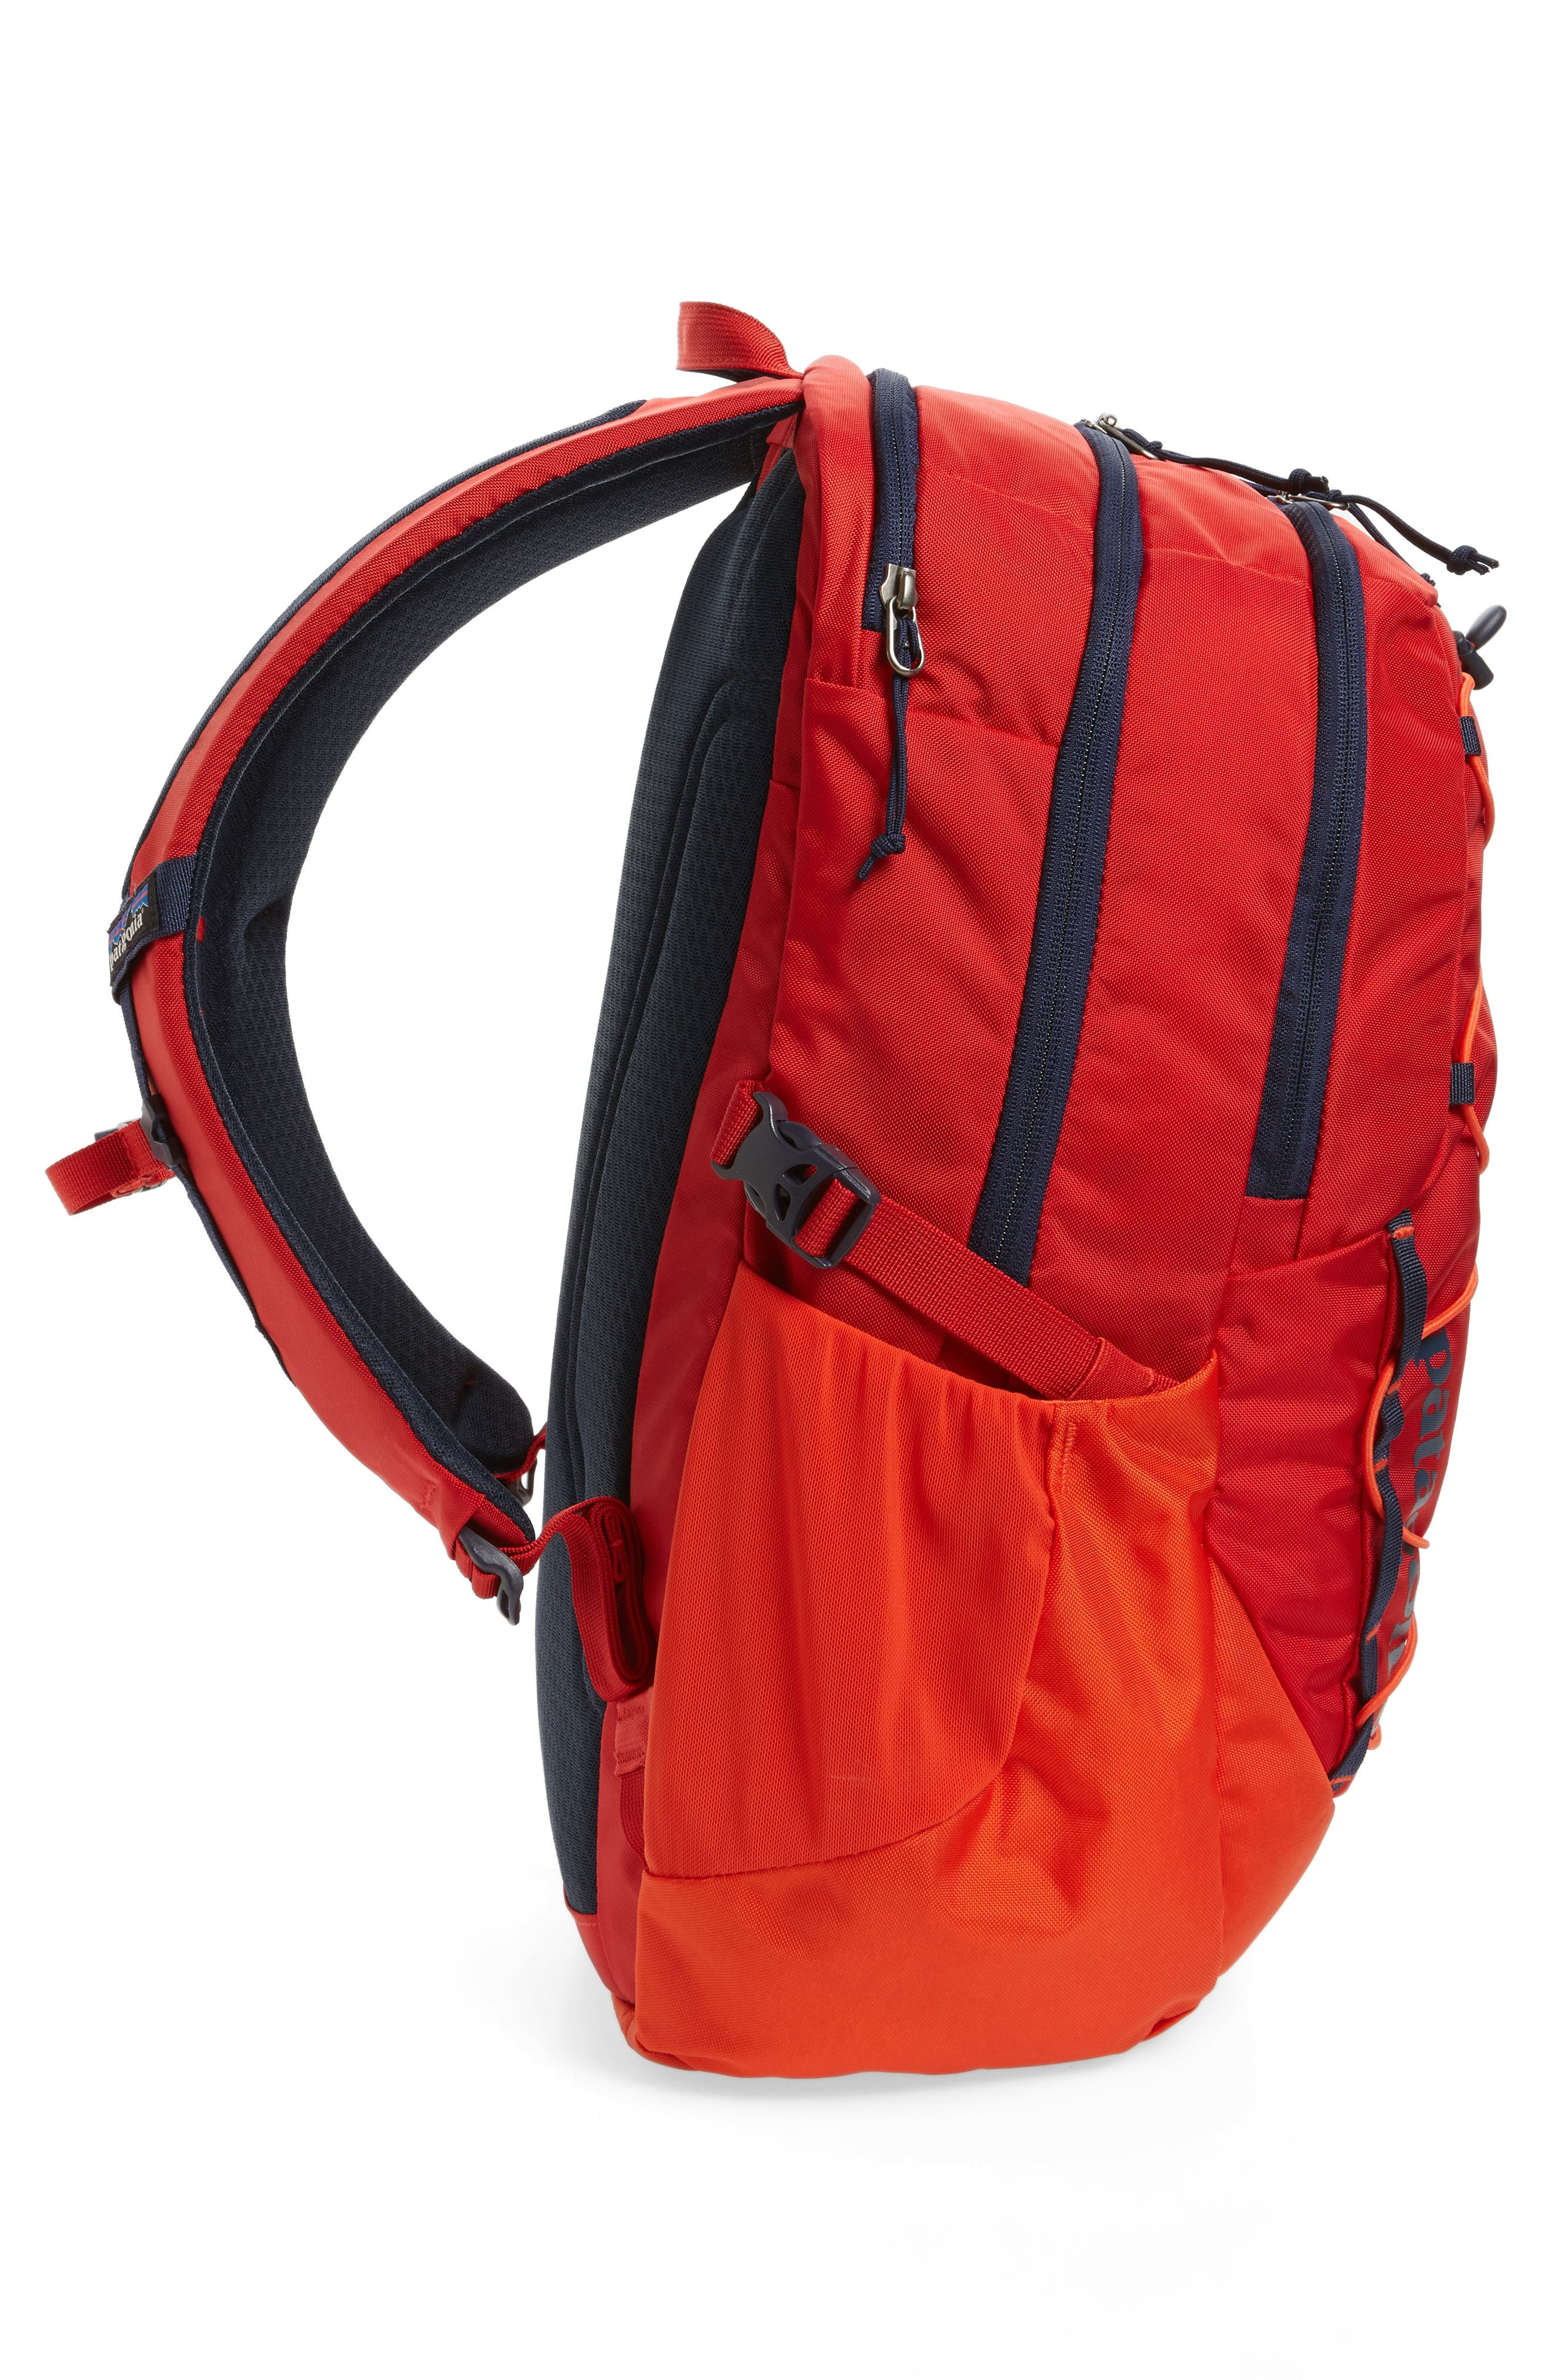 30L Chacabuco Backpack,                             Alternate thumbnail 5, color,                             Paintbrush Red